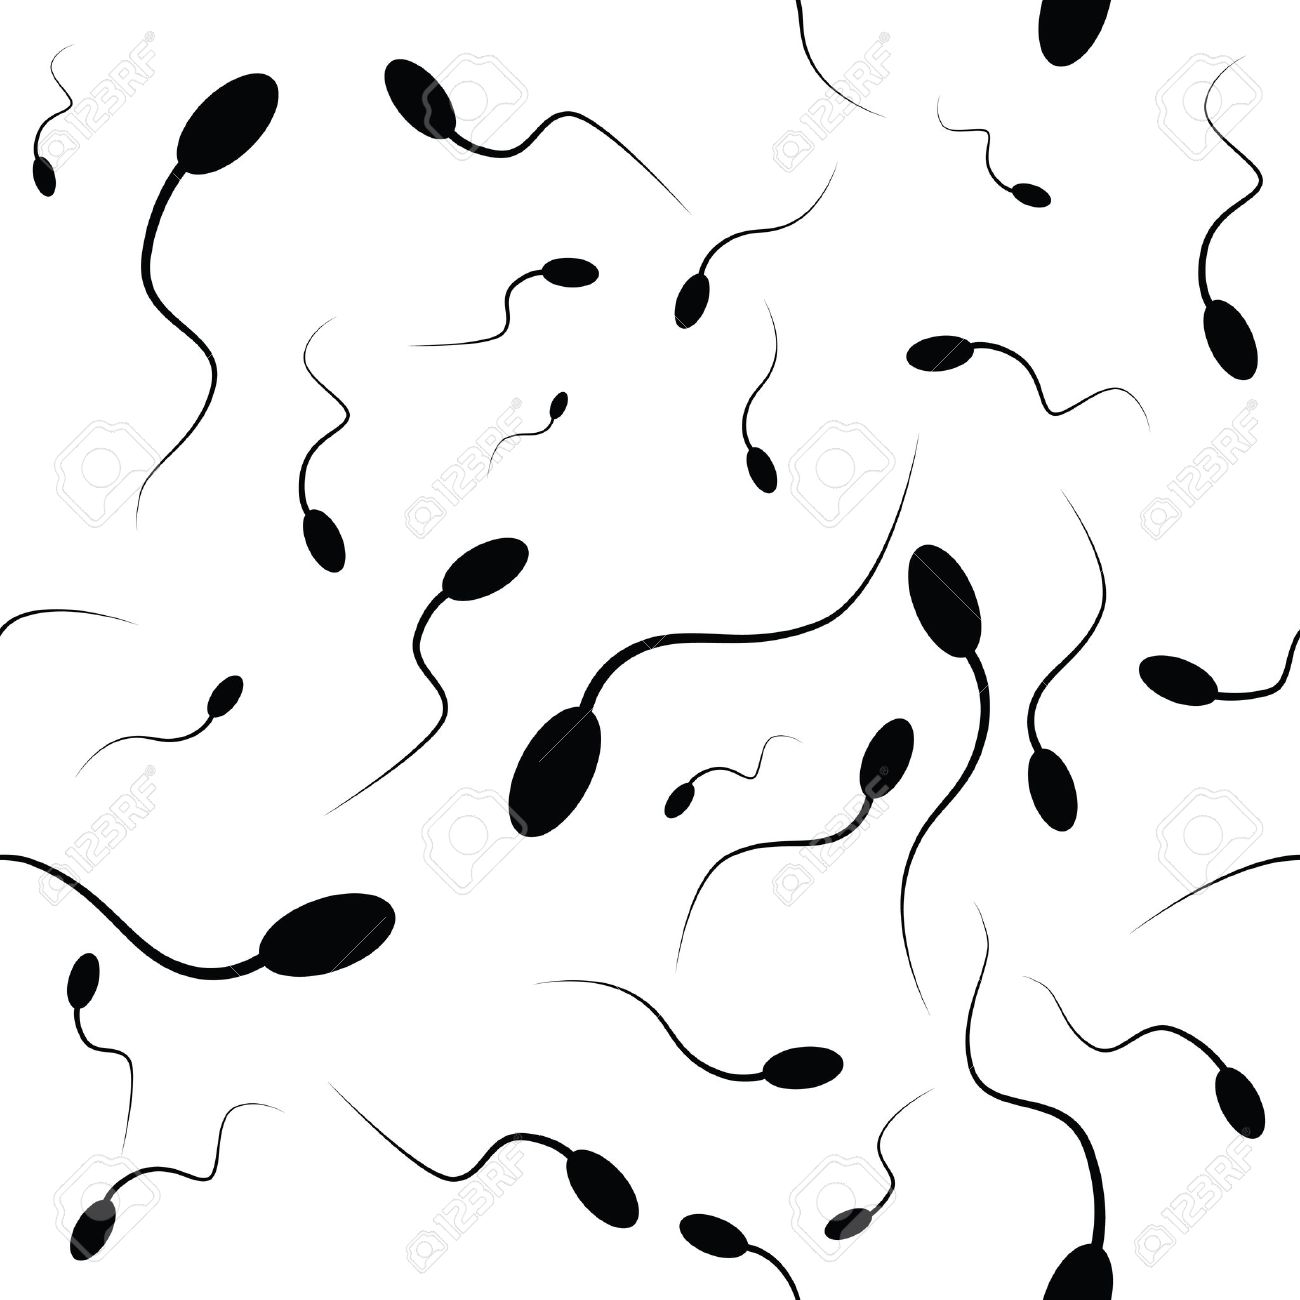 Spermatozoons as a background. Vector illustration. Stock Vector - 23655699